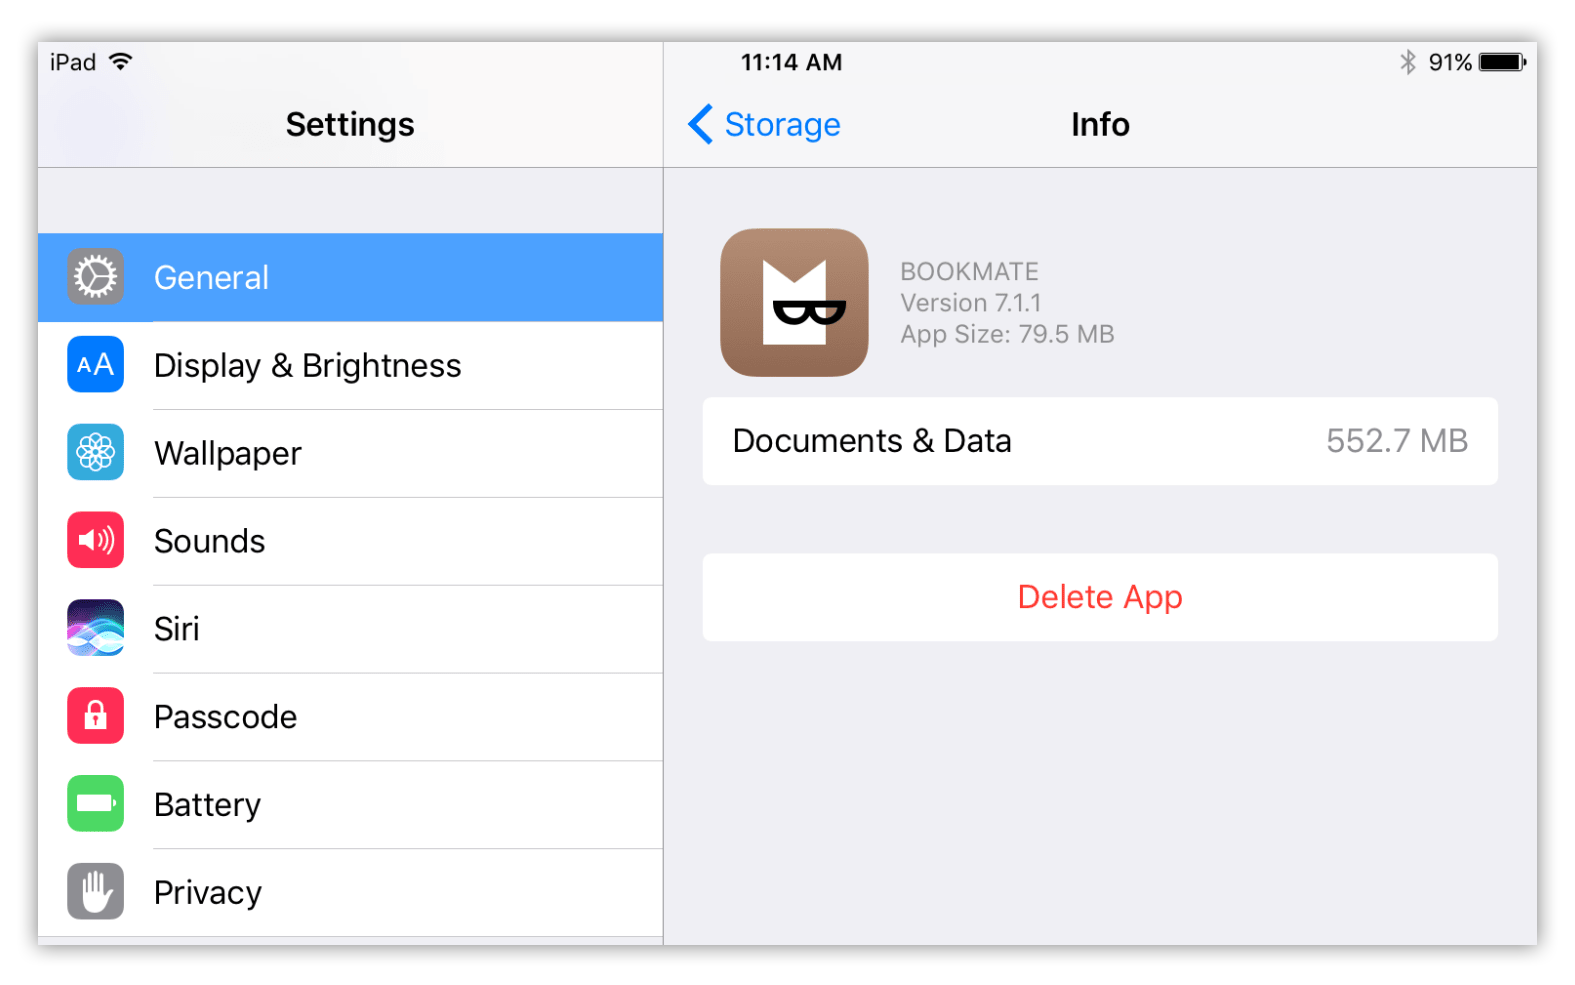 Documents and data info on iPad